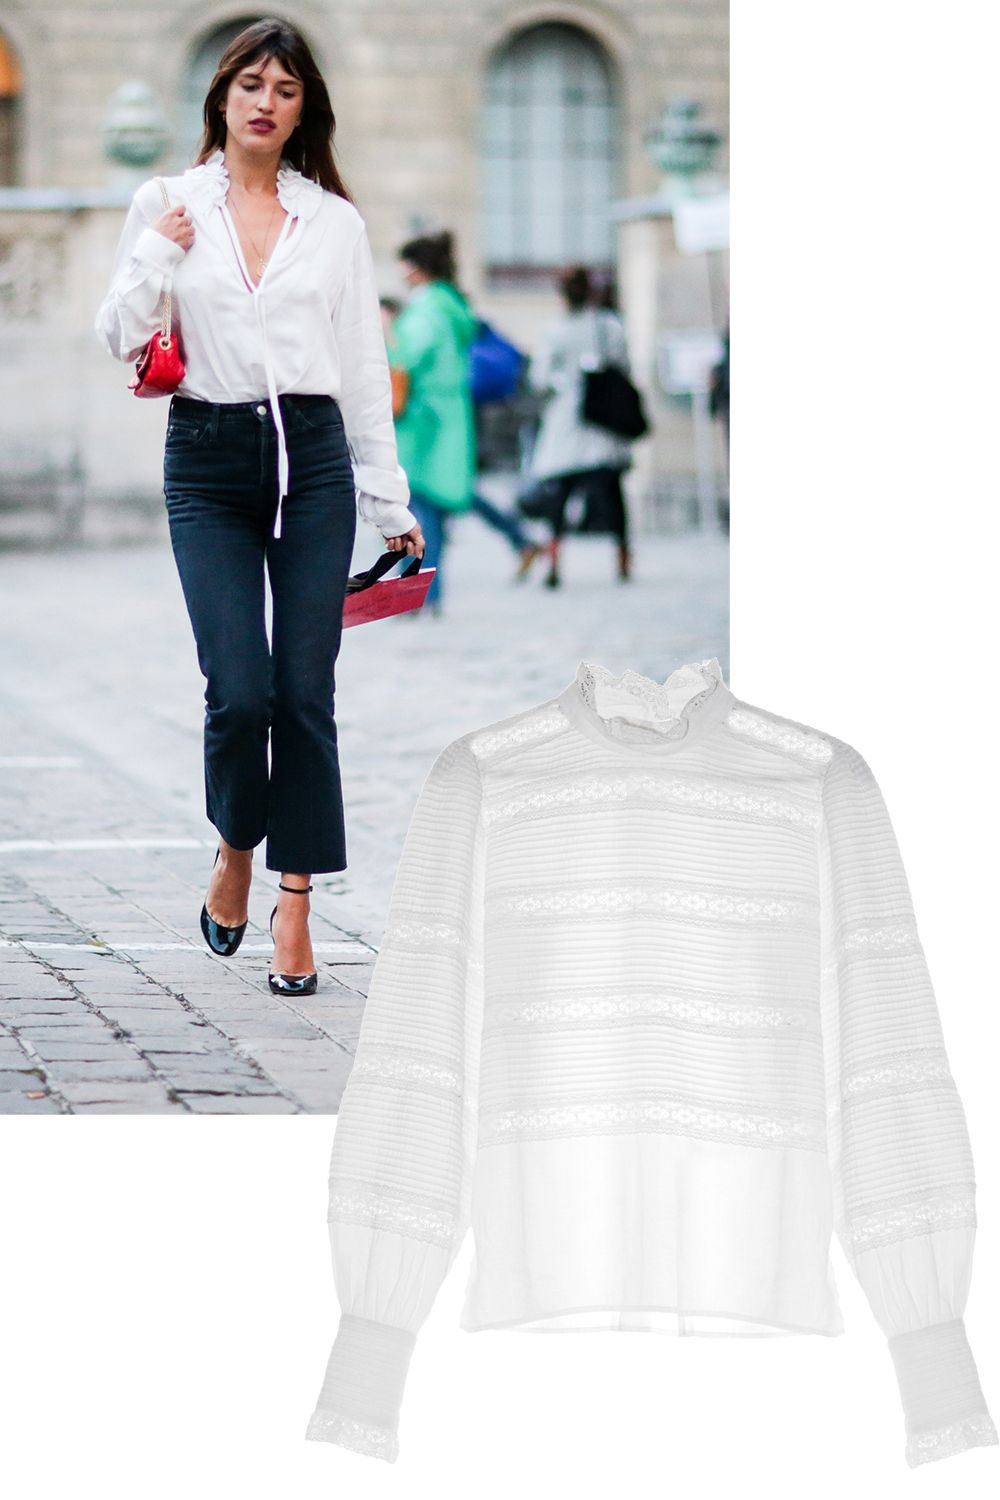 "<p>Who: Jeanna Damas</p><p>What: A pretty blouse and cropped trousers gives that ideal French girl chic.</p><p><em data-redactor-tag=""em"" data-verified=""redactor"">Isabel Marant 'Etoile' blouse, $405</em><span class=""redactor-invisible-space"" data-verified=""redactor"" data-redactor-tag=""span"" data-redactor-class=""redactor-invisible-space""><em data-redactor-tag=""em"" data-verified=""redactor"">, <a href=""http://www.matchesfashion.com/us/products/Isabel-Marant-%C3%89toile-Ria-high-neck-lace-insert-blouse-1059571"" target=""_blank"">matchesfashion.com</a>. </em></span></p>"